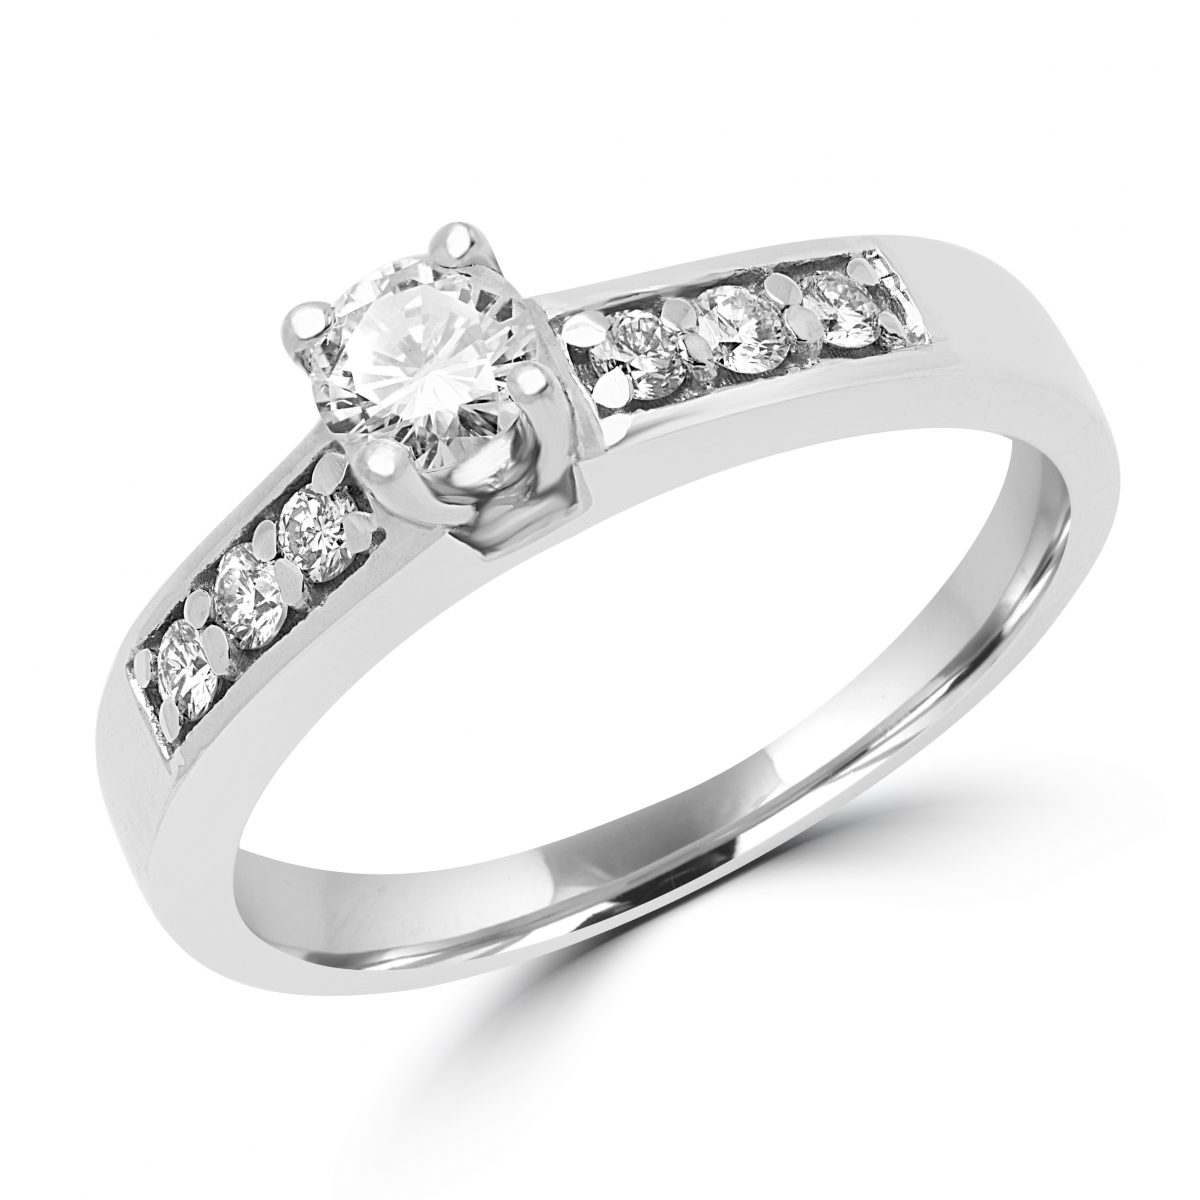 Impressive Solitaire Engagement Ring 0.42 (ctw) In 14k